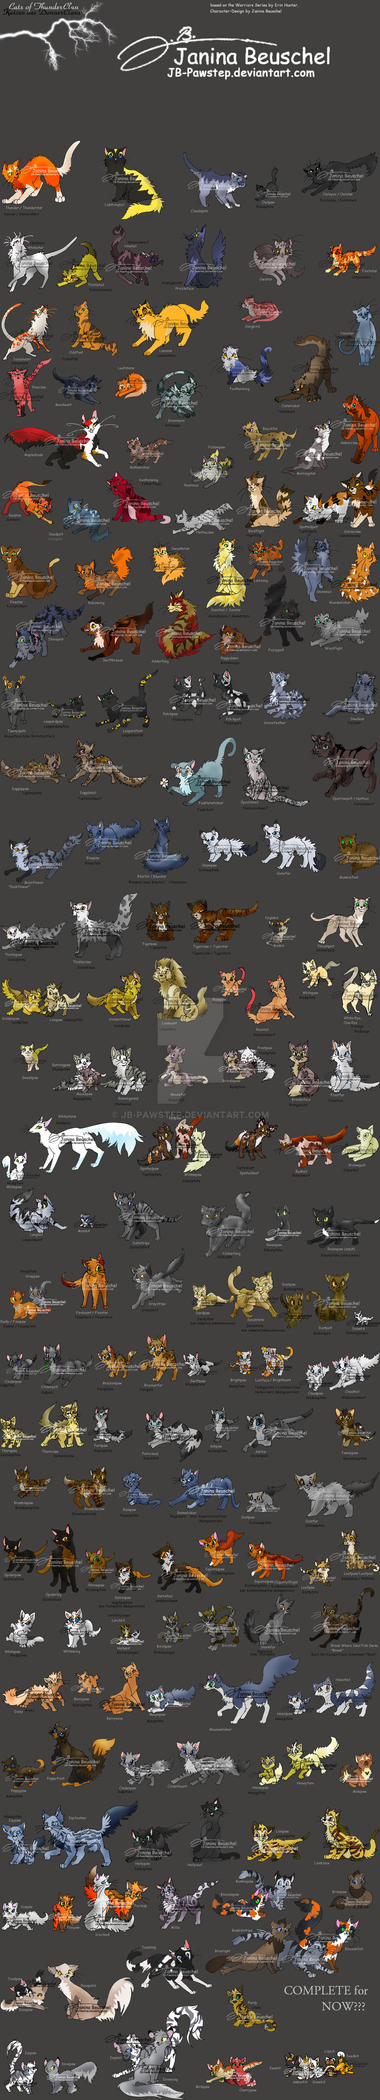 Warriors of ThunderClan by JB-Pawstep